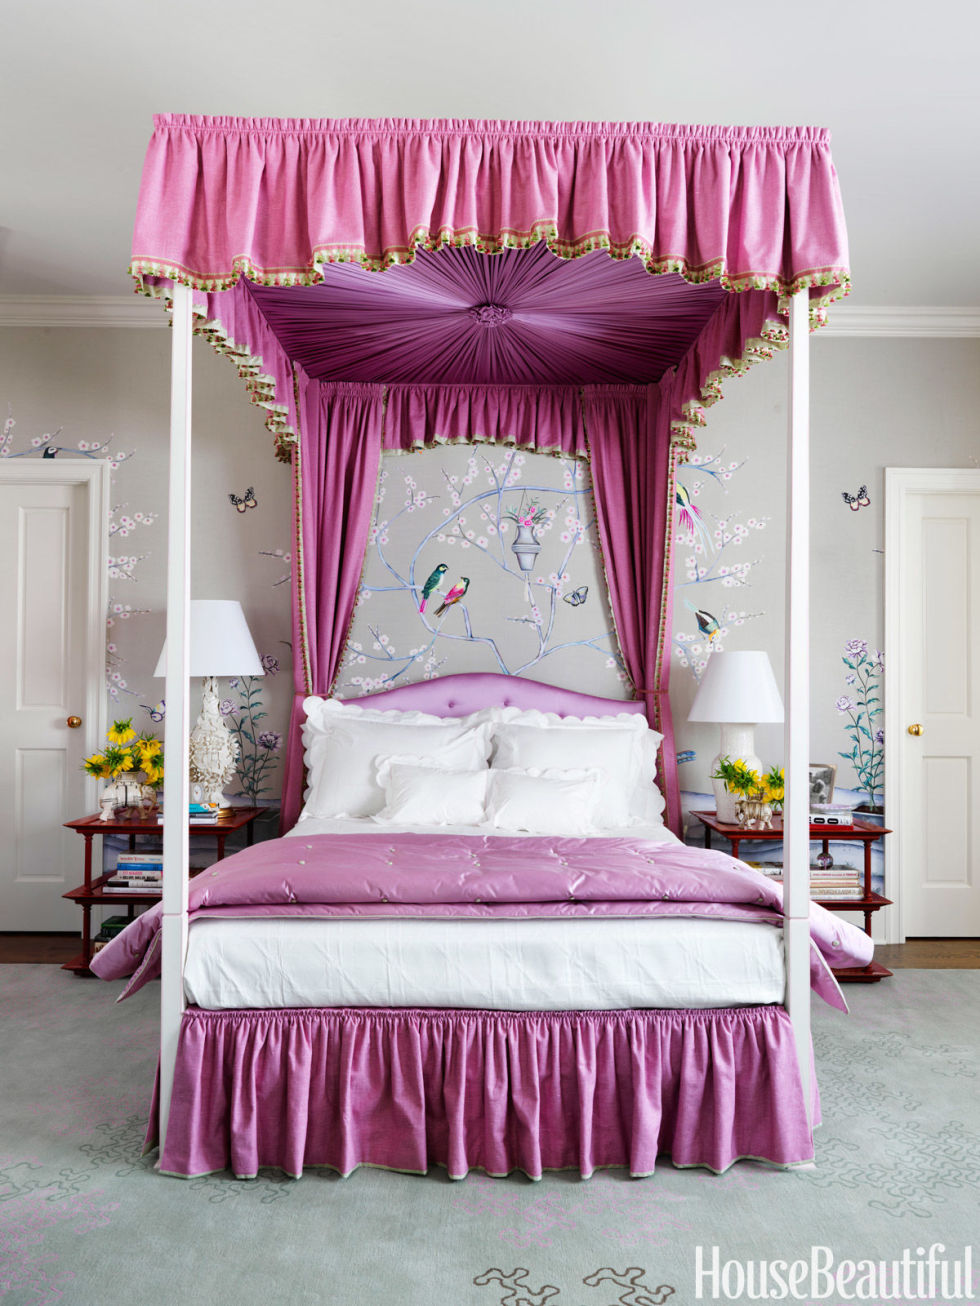 Pink bedroom paint colors - Pink Bedroom Paint Colors 16